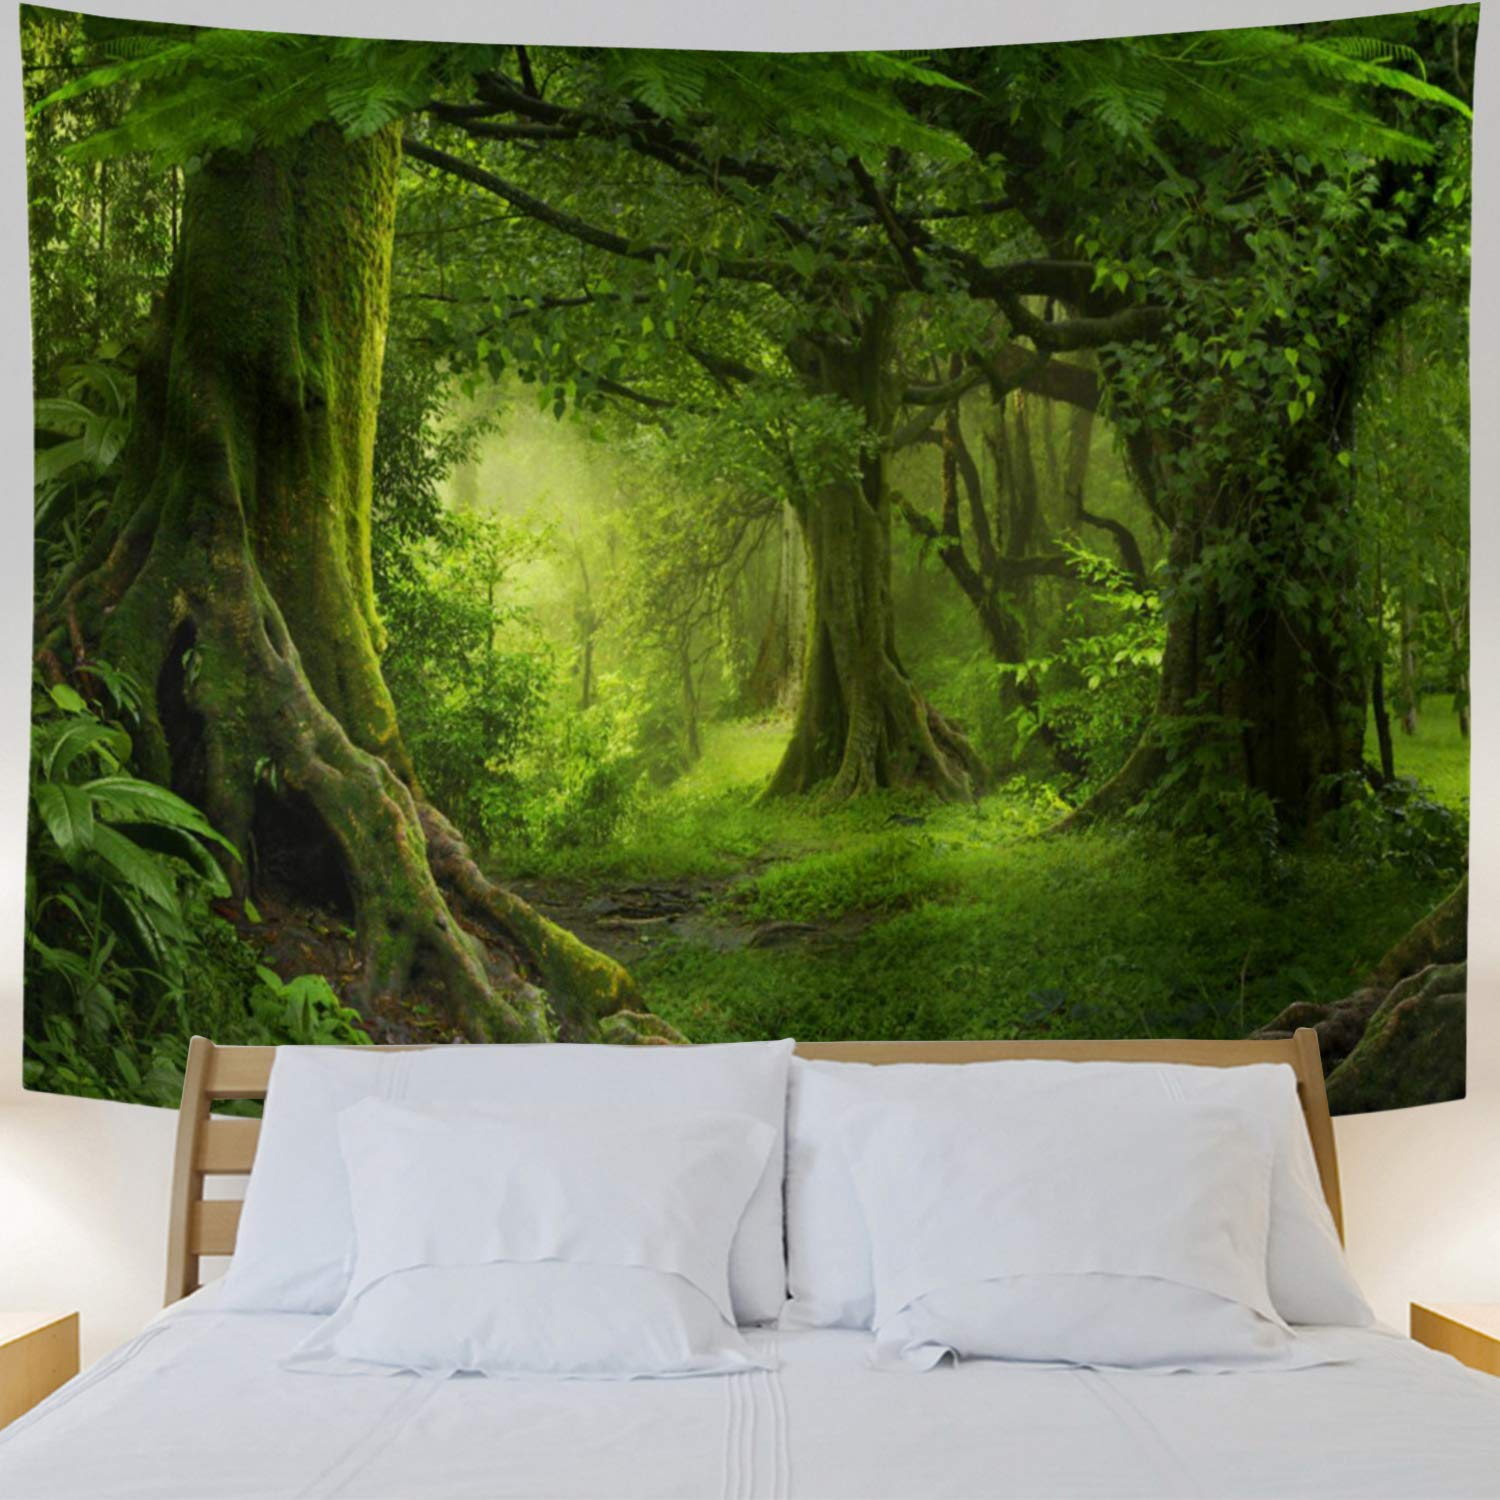 Lahasbja Virgin Forest Tapestry Green Tree in Misty Forest Tapestry Wall Hanging Nature Scenery Wall Tapestry Decor for Living Room Bedroom